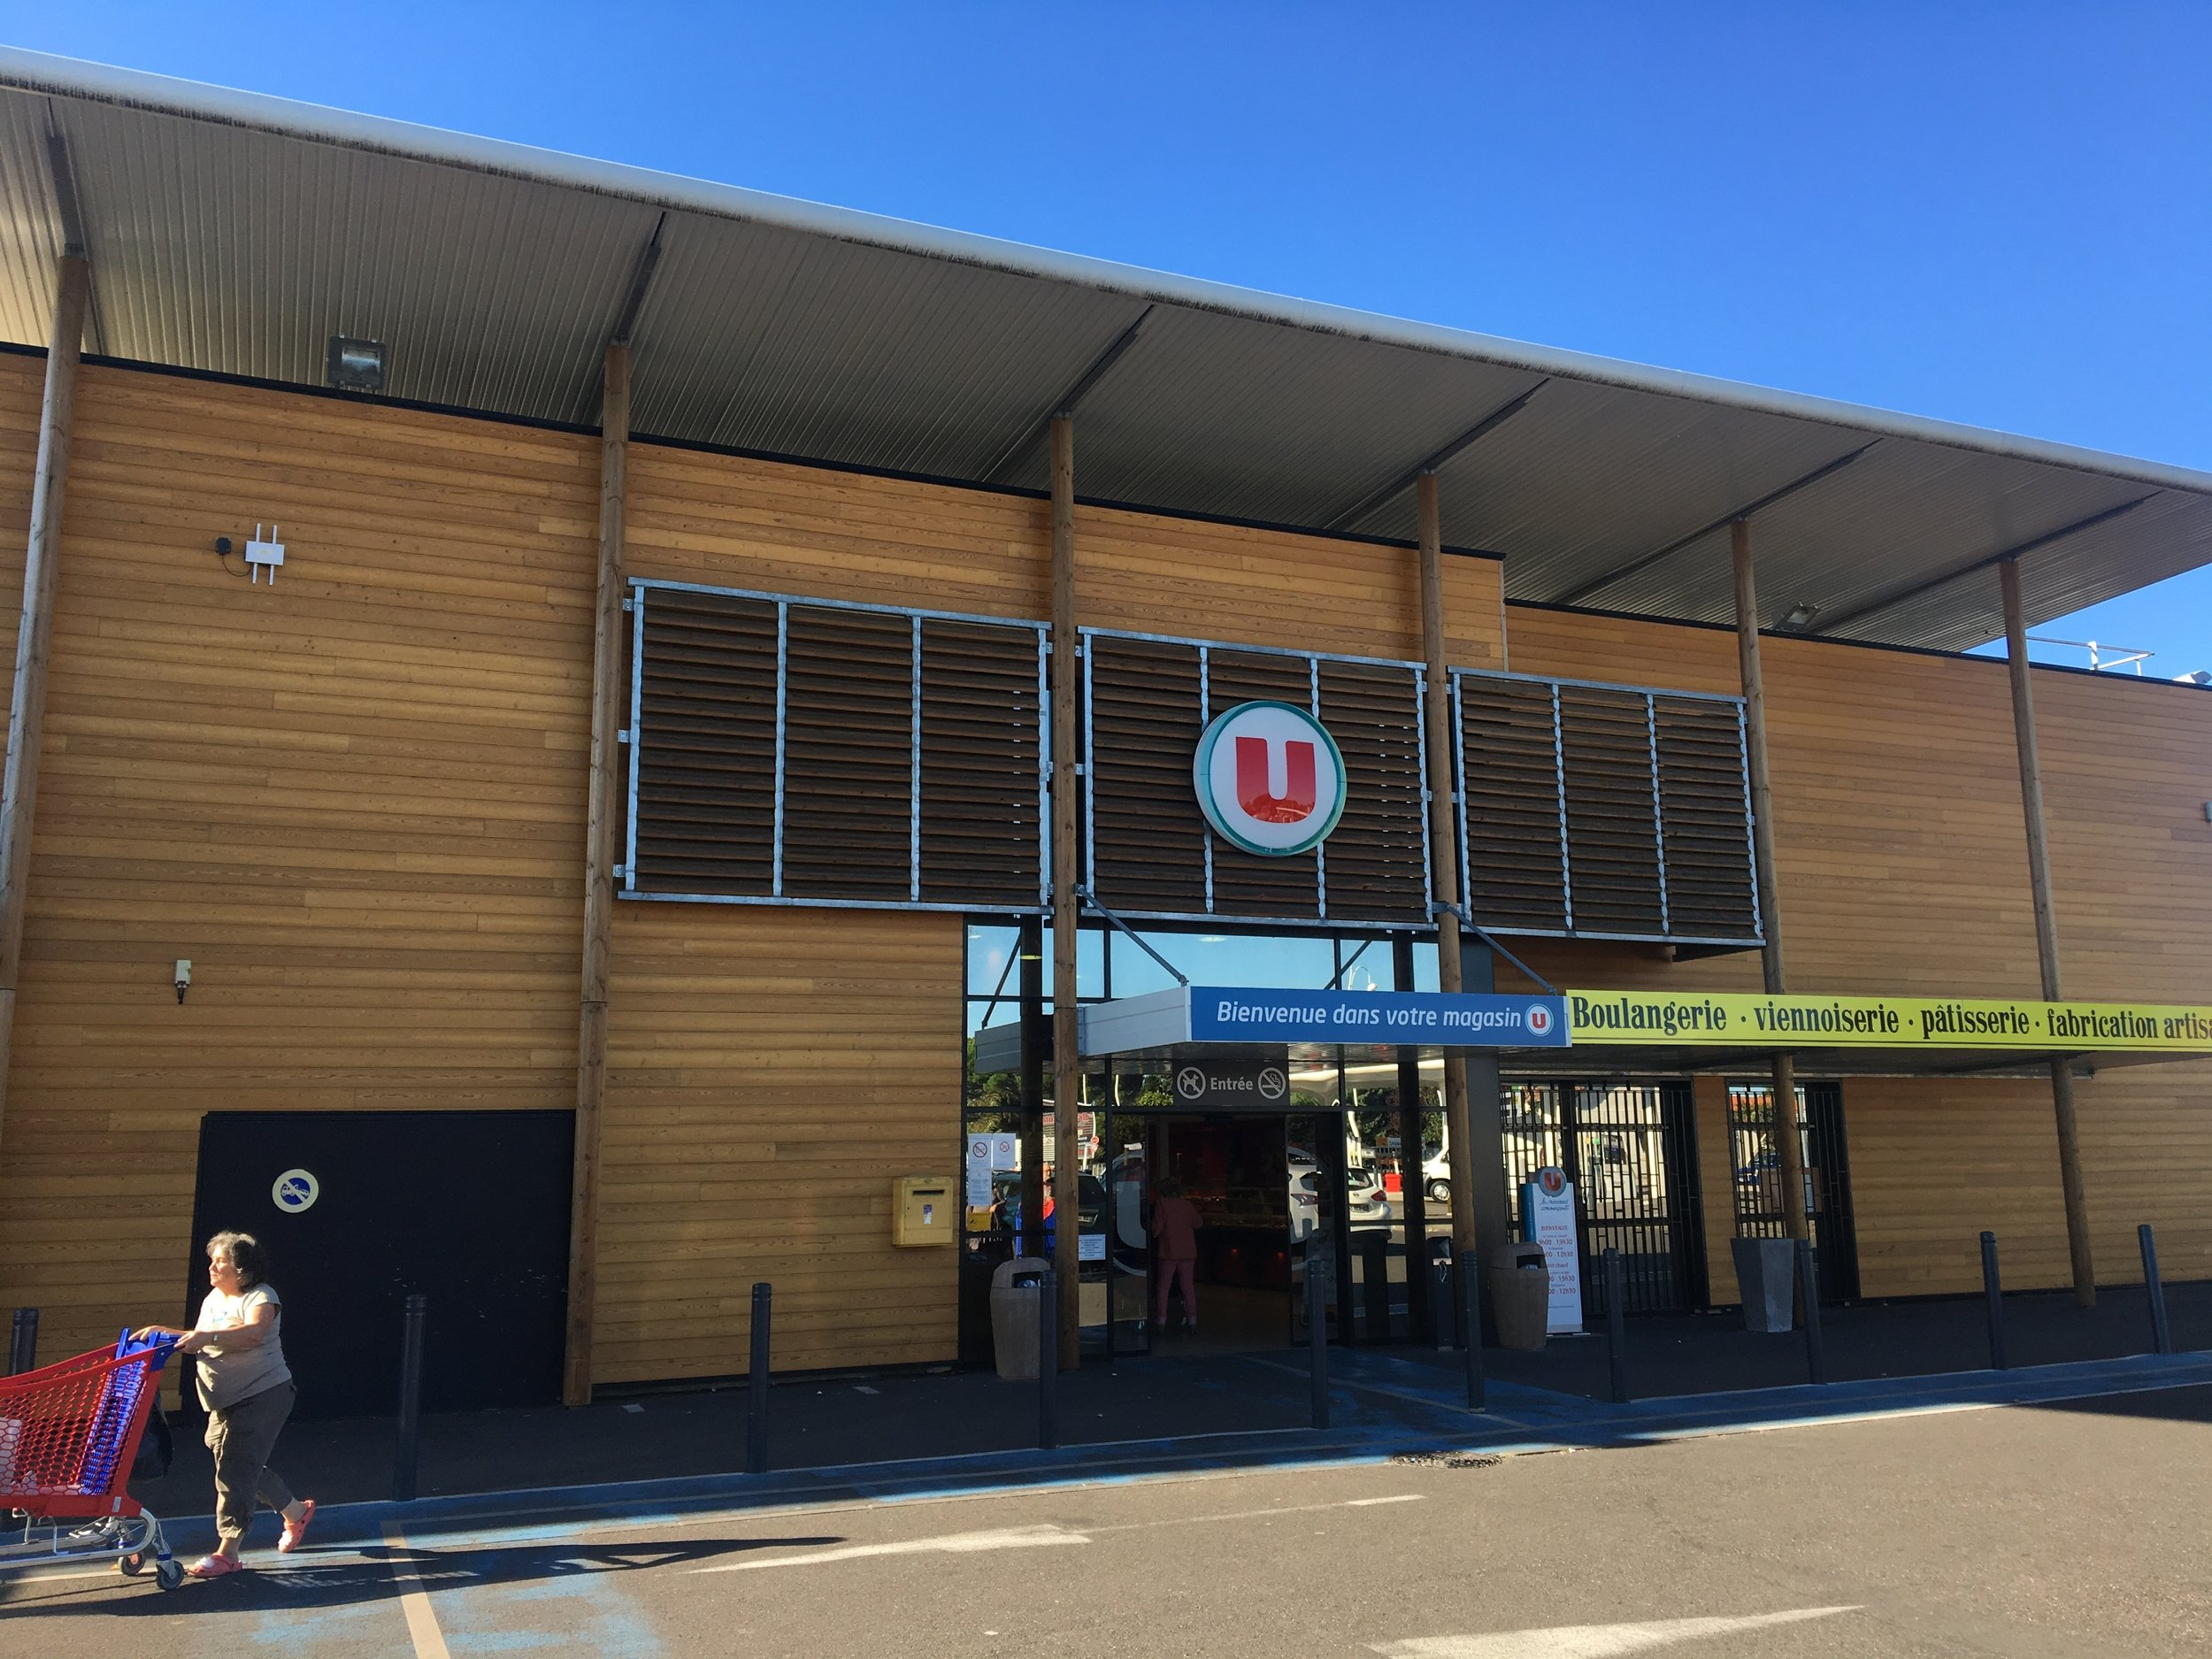 My local Super U, part of one of France's big grocery store chains